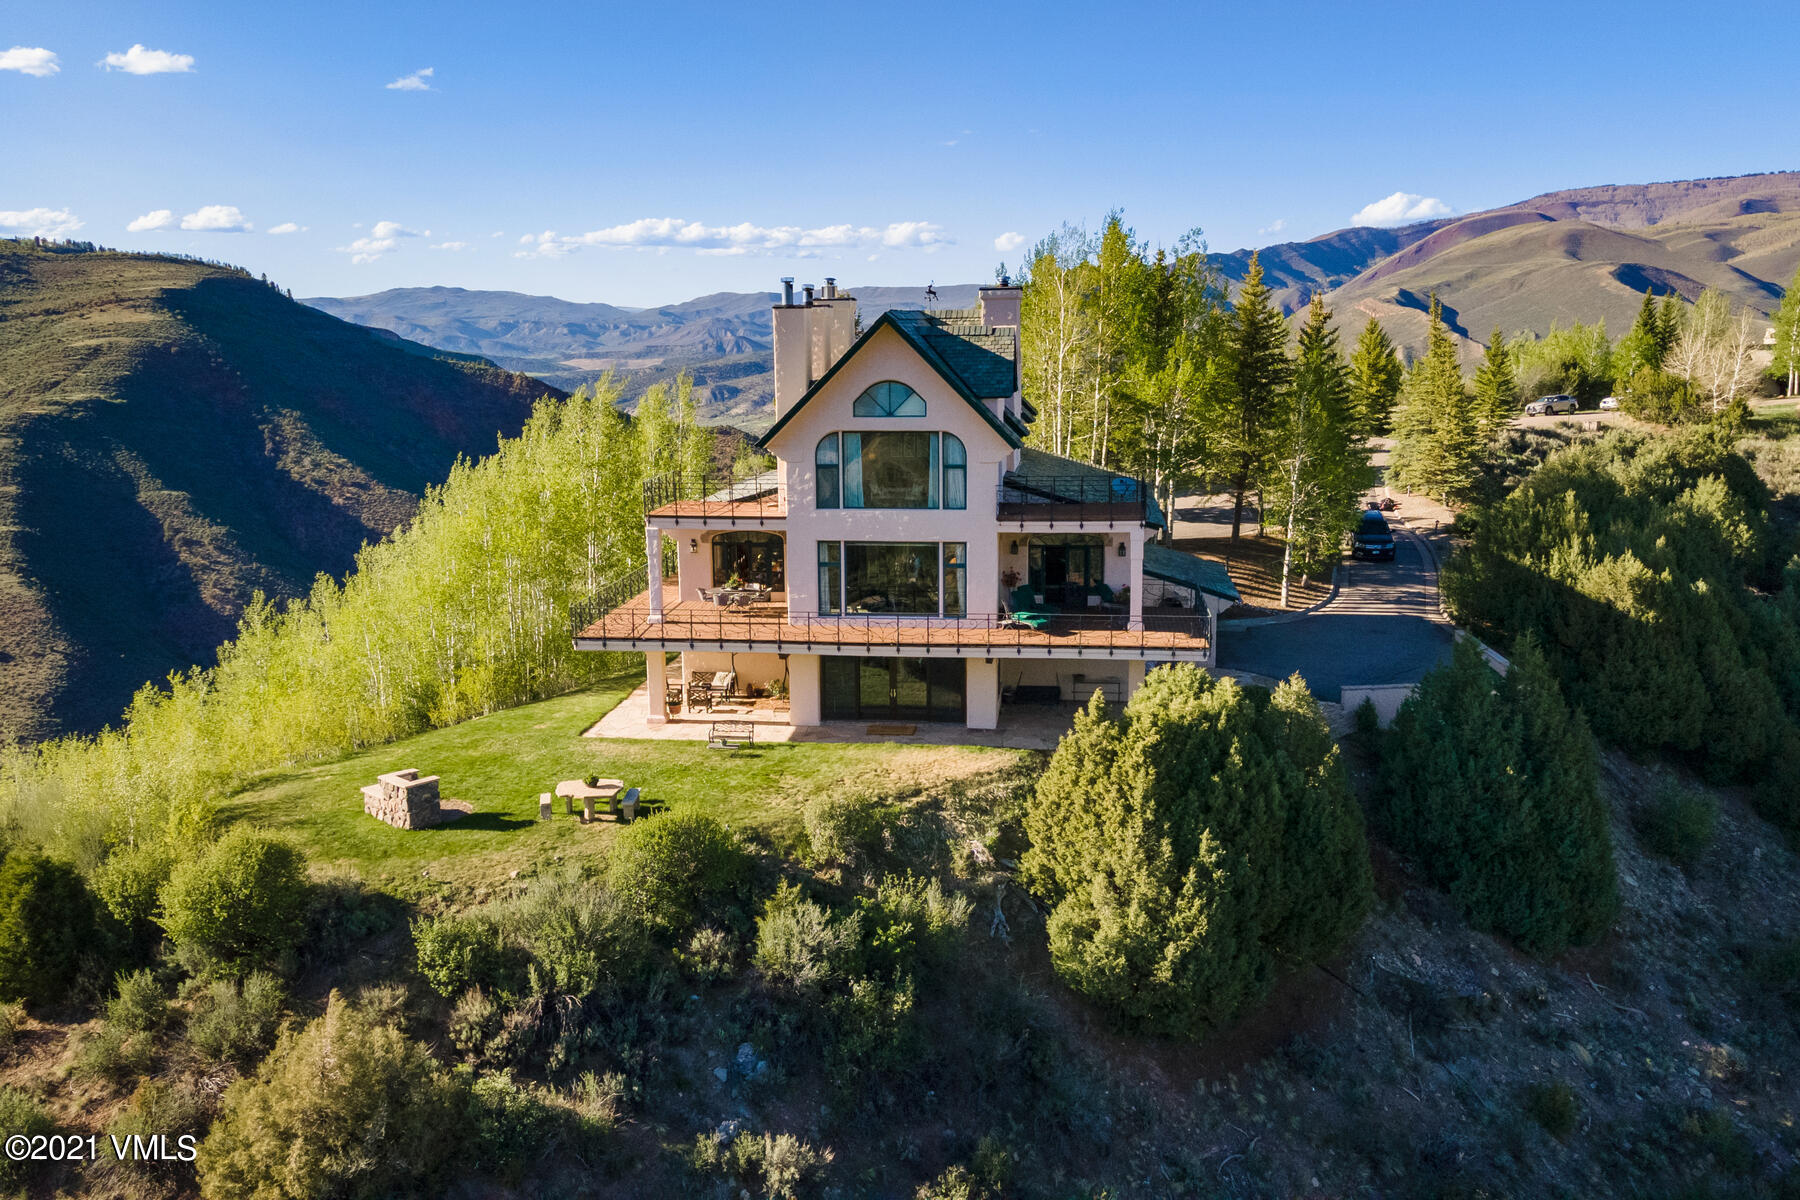 Curious about what makes Cordillera so incredibly wonderful? Come and live like a local in this luxury gated community. Find out for yourself by becoming the new owner of 115 Alhambra Place in the convenient Divide of Cordillera. A sweeping 90 foot deck invites entertaining on a grand scale as guests jaws drop in disbelief from the panoramic scene of the Gore Range and Back Bowls of Vail to the east, south to the Sawatch mountain peaks and west to the Ranch and Summit communities of Cordillera. Retire to your master suite on its own level with 2 generous sun decks, his and her walk in wardrobes and a soothing spa-like bathroom while observing majestic views in all directions in undisturbed privacy. This iconic residence sits on over 10 acres of land and offers 3 additional bedroom suites all with ensuite baths. Blow your guests away as they are greeted by 2 large coppered lions flanking an 800 year old wooden door at the grand front entrance. Once inside, friends and family will be instantly drawn into the great room with exposed wood beams and European charm toward the copious windows and French doors leading to the generous outdoor living areas. From the lower level living space, open the enormous sliding glass doors for a seamless transition to a flat enjoyable back yard and take in the warmth of an outdoor stone fireplace. Superior new upgrades throughout the residence. 115 Alhambra is awaiting you. What are you waiting for? Schedule your private showing today.